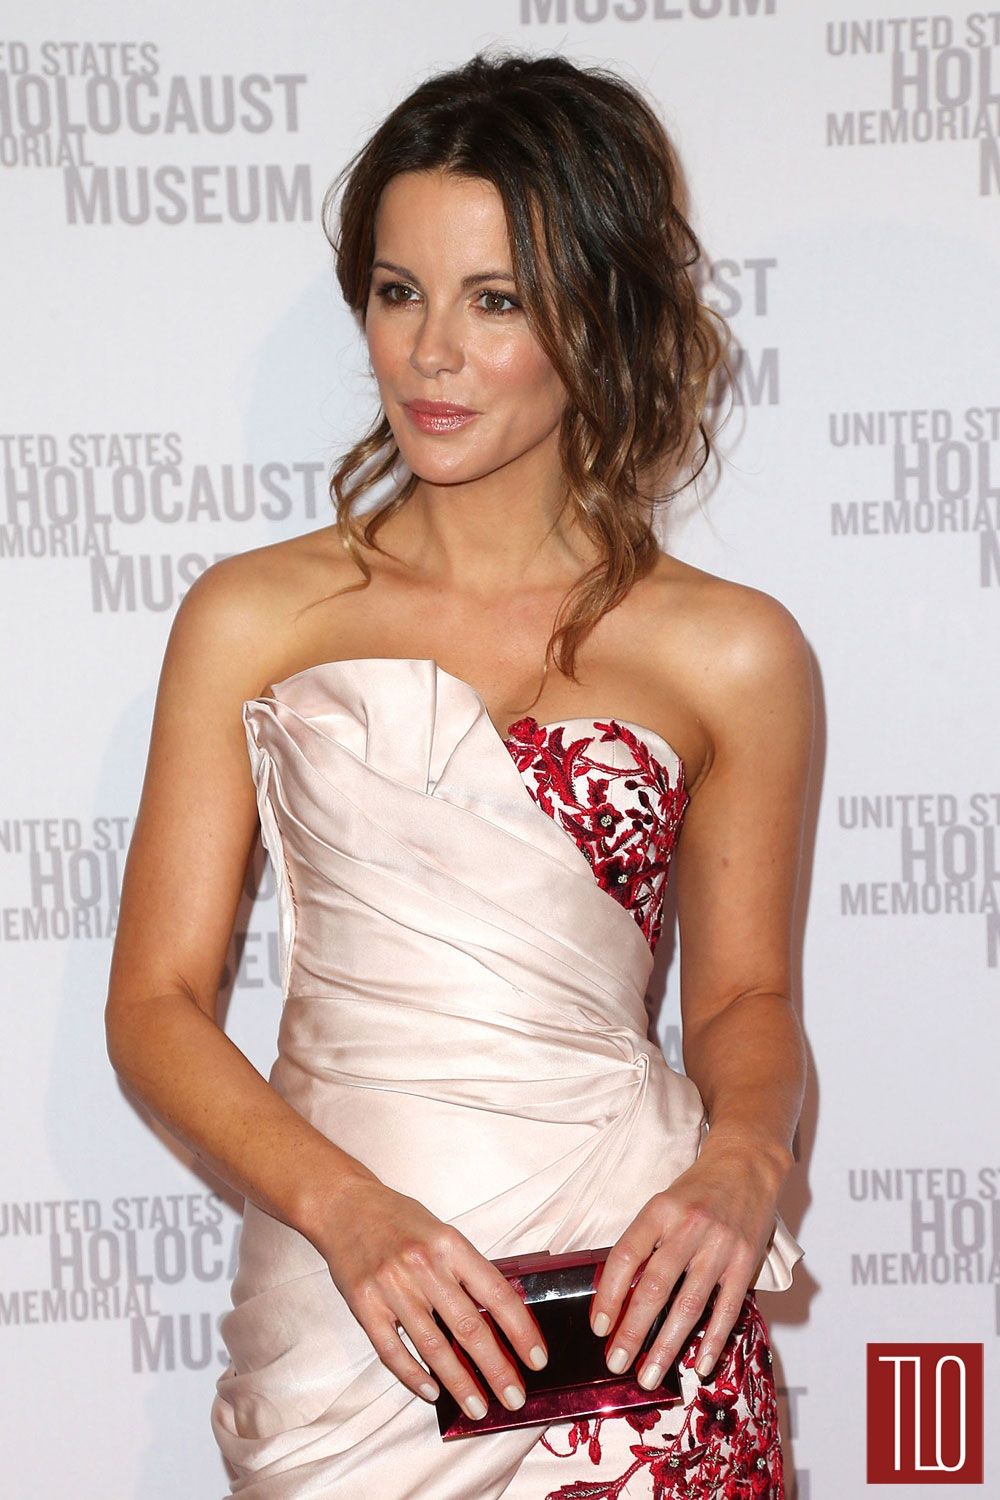 Kate-Beckinsale-Marchesa-Holocaust-Museum-What-You-Do-Matters-Event-Tom-Lorenzo-Site-TLO (1)